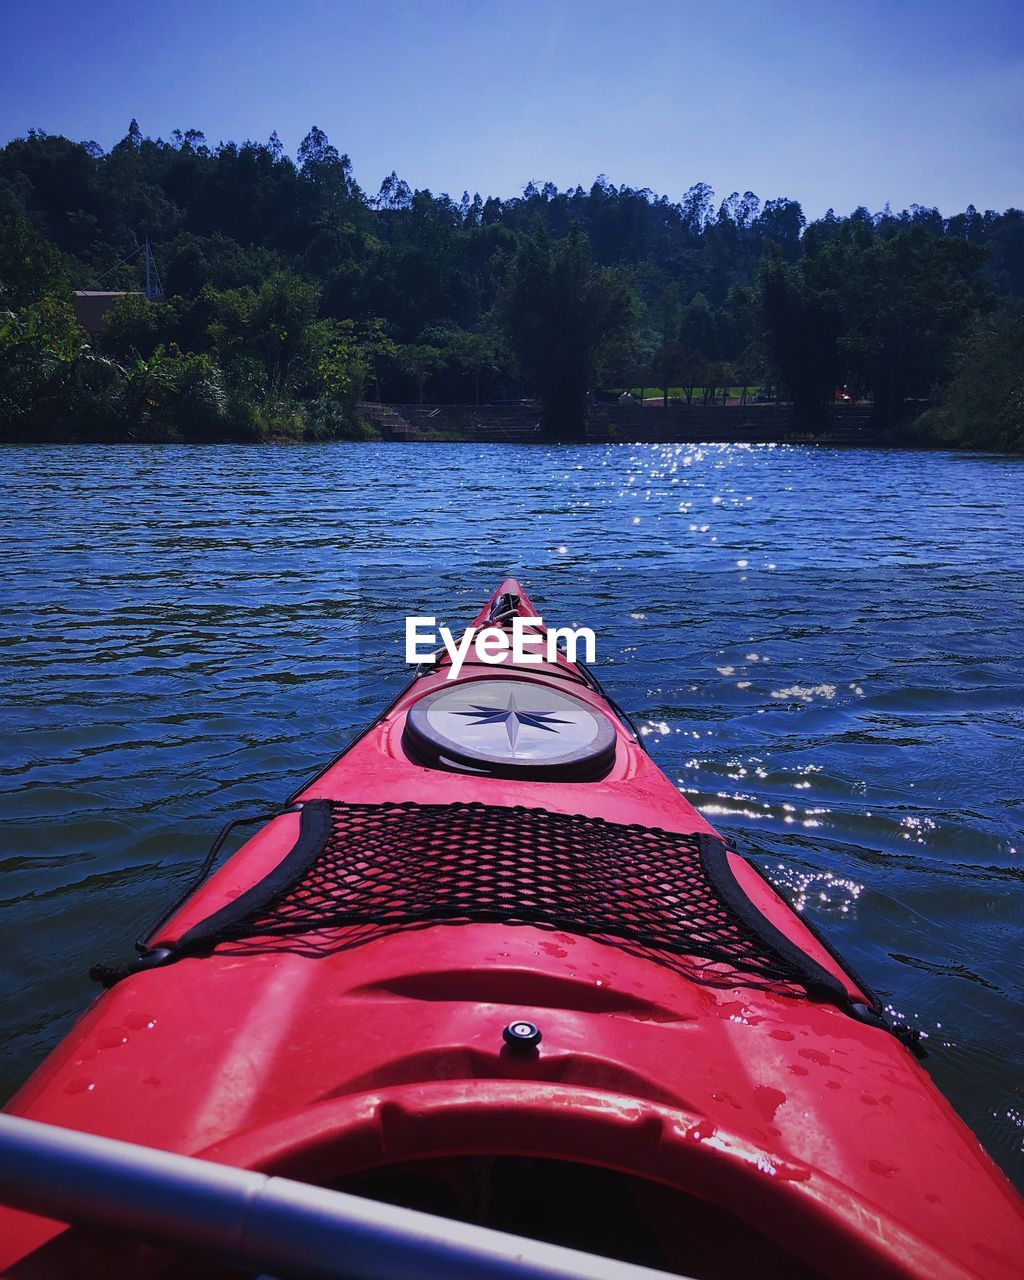 water, tree, transportation, plant, mode of transportation, nautical vessel, red, nature, lake, day, beauty in nature, sky, no people, kayak, scenics - nature, tranquility, outdoors, adventure, inflatable, rowboat